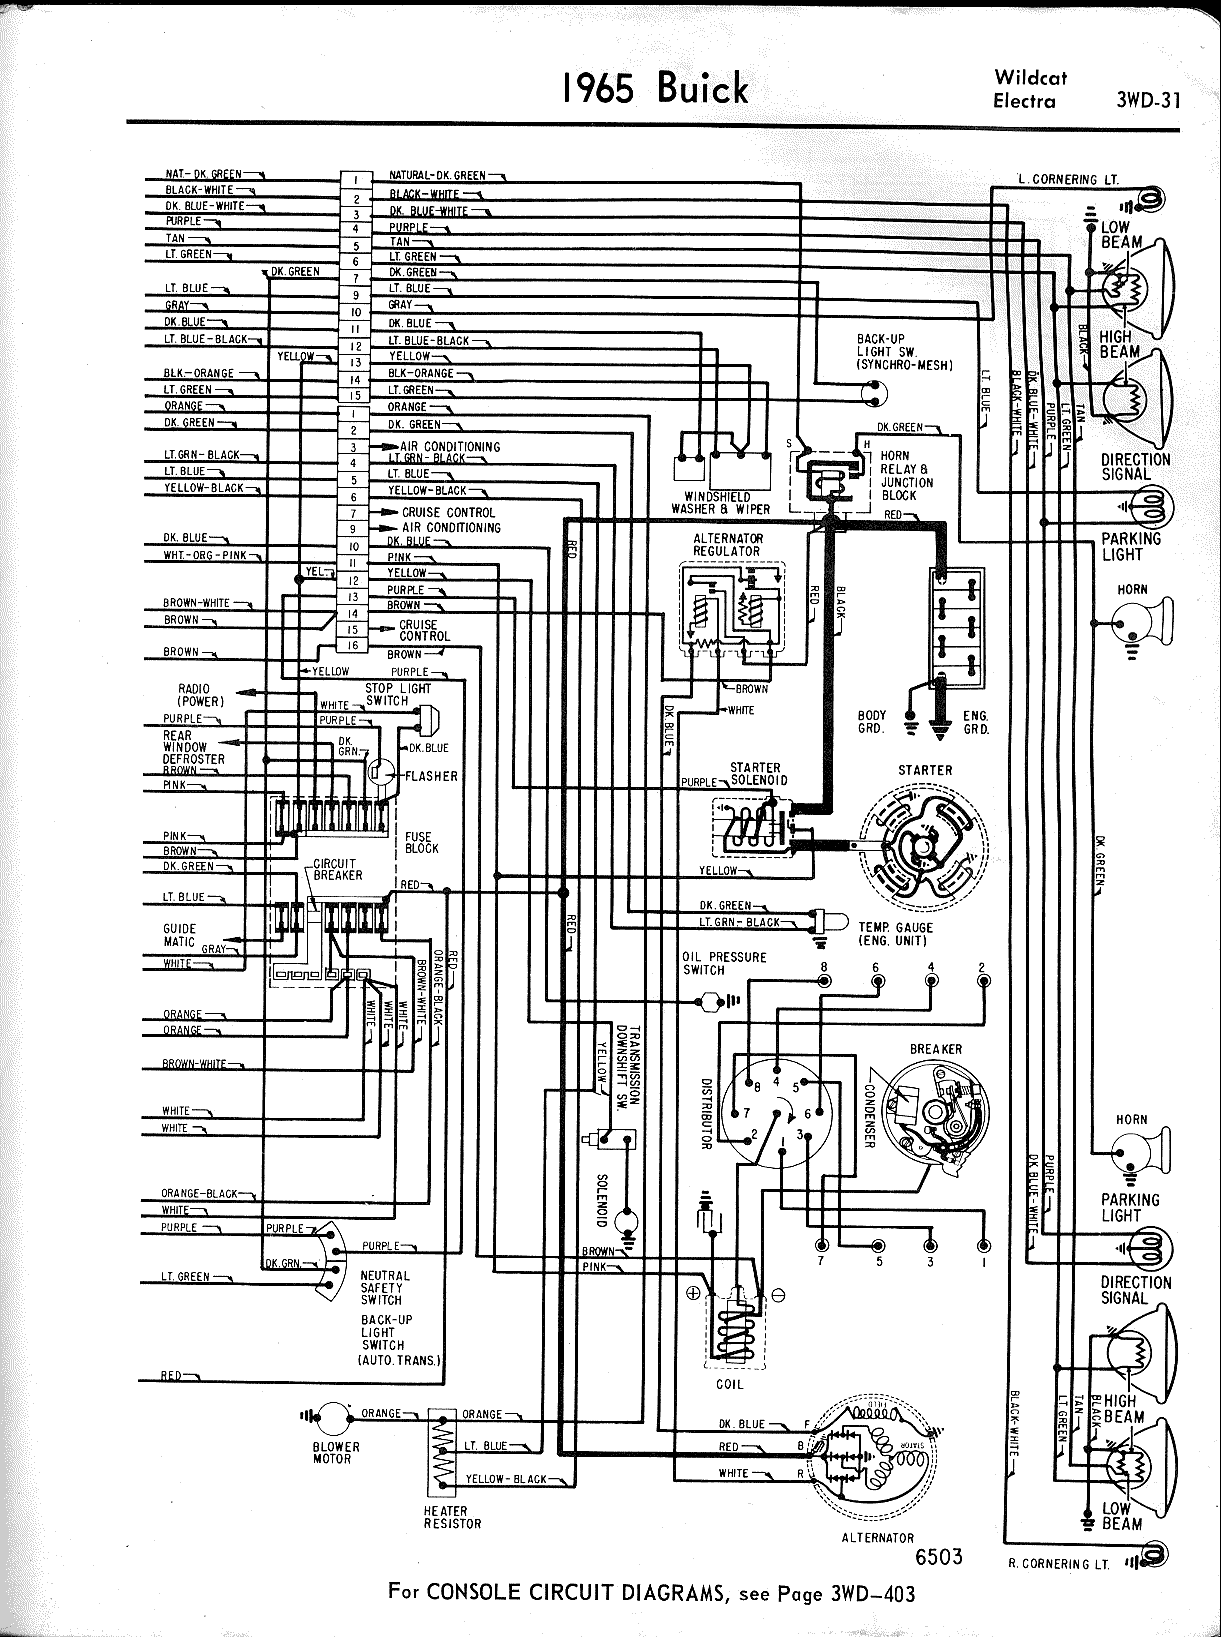 Buick Wiring Diagrams 1957 1965 Motor Diagram On Ford Mustang Wiper Wildcat Electra Right Half